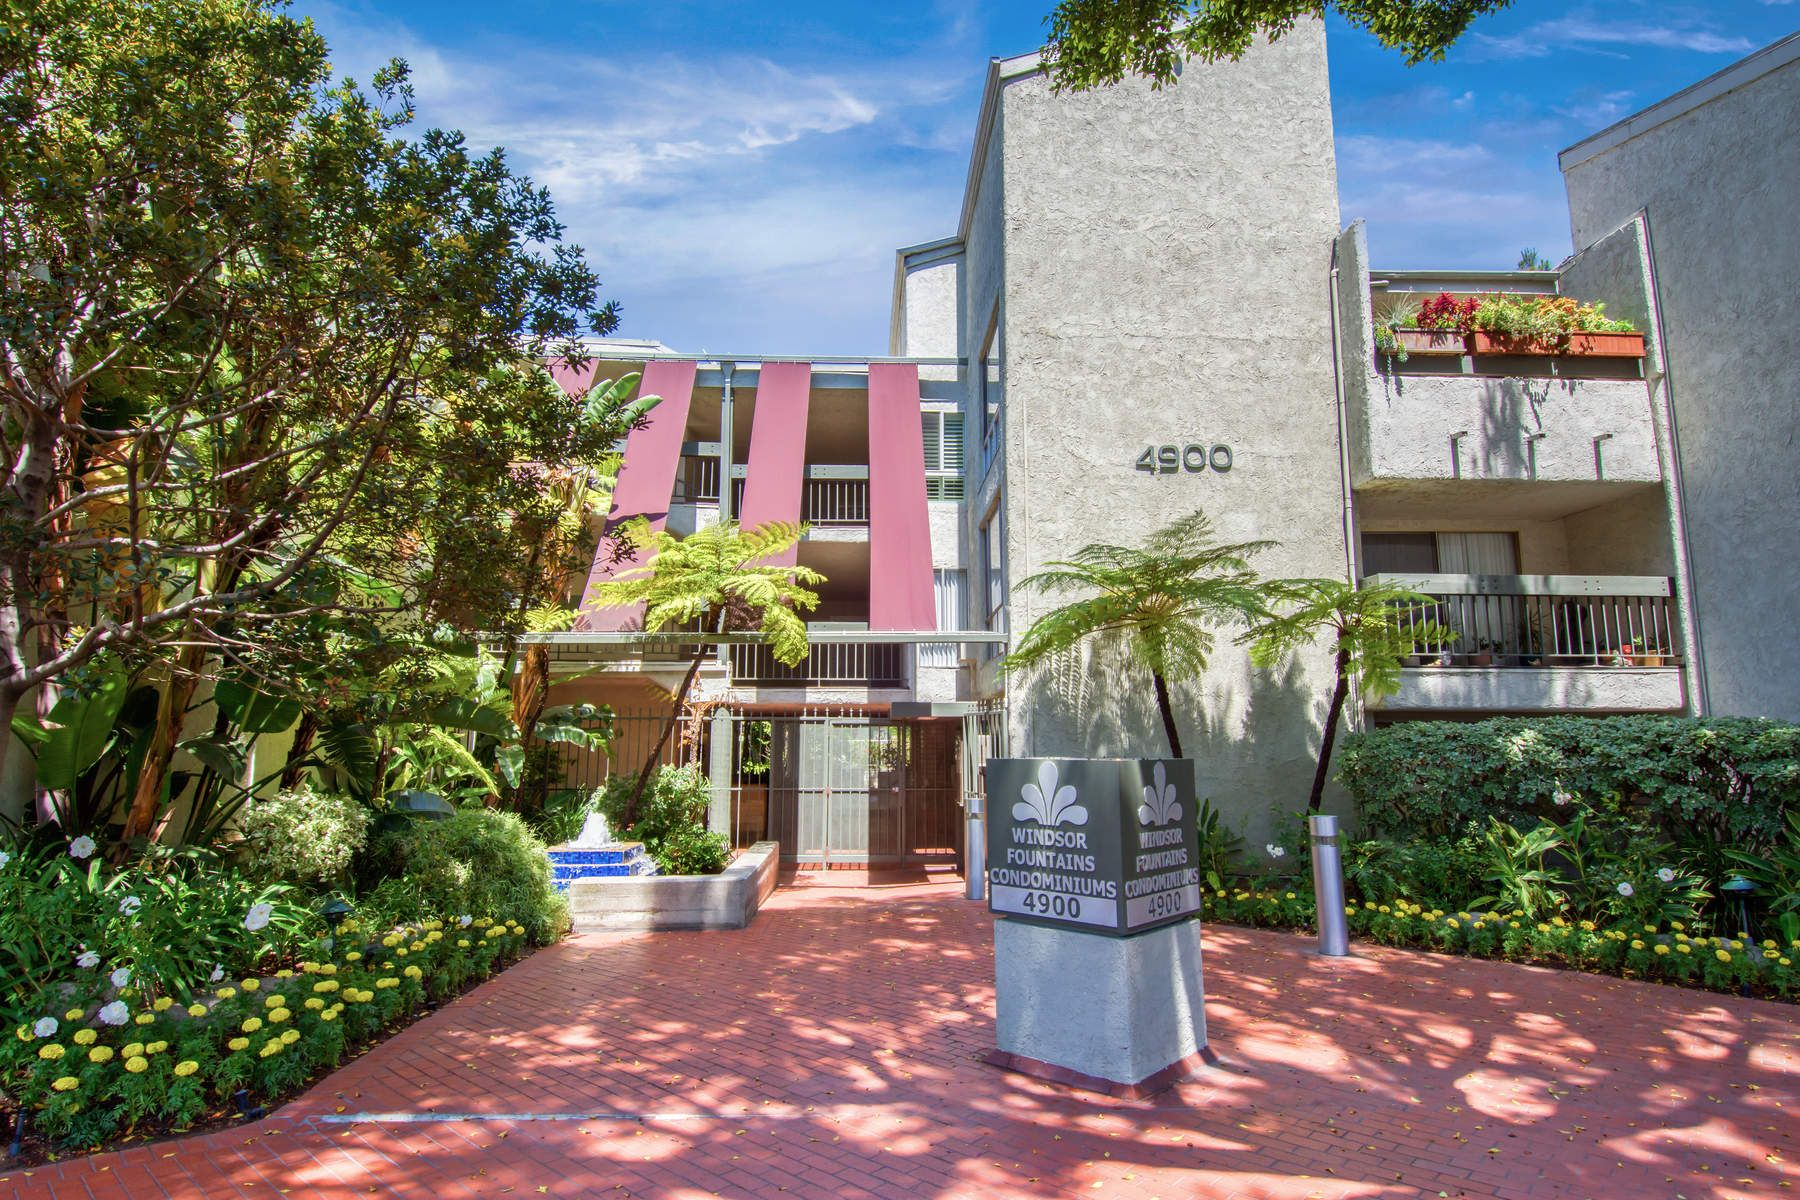 Condominium for Sale at Windsor Fountains Condo 4900 Overland Avenue #228 Culver City, California 90230 United States